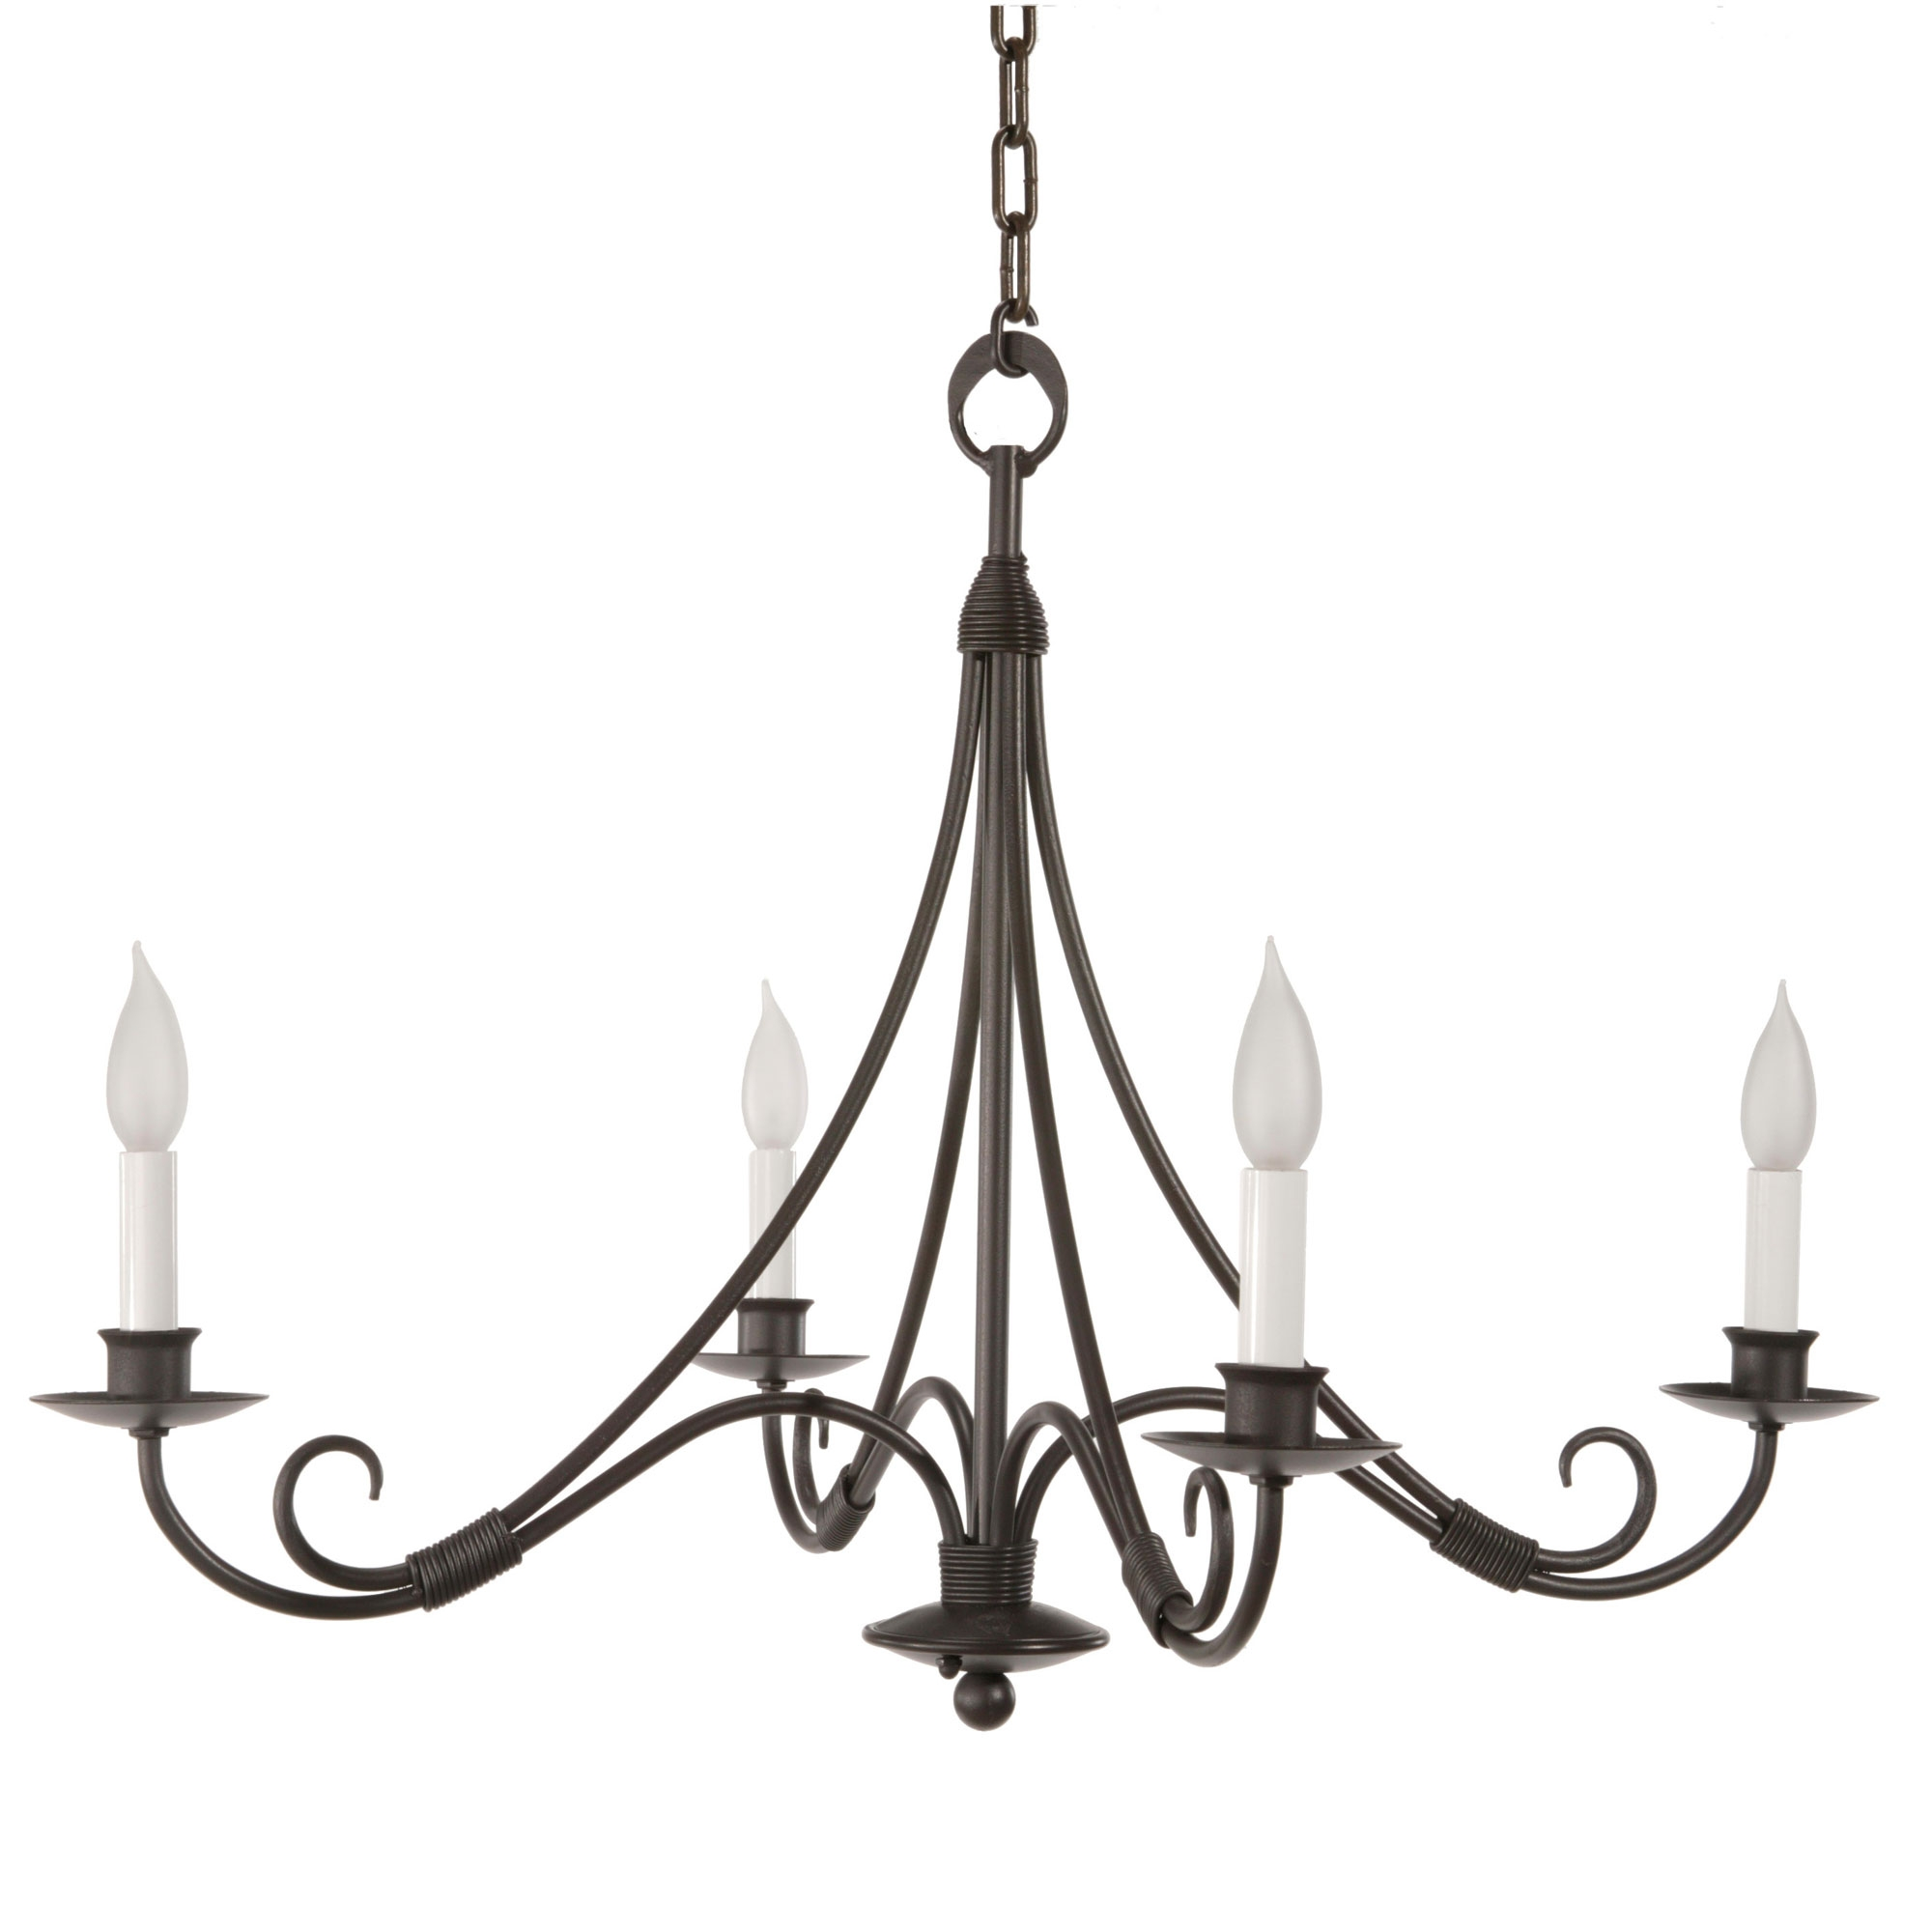 Elegant kitchen designs using wrought iron accessories artisan crafted iron furnishings and